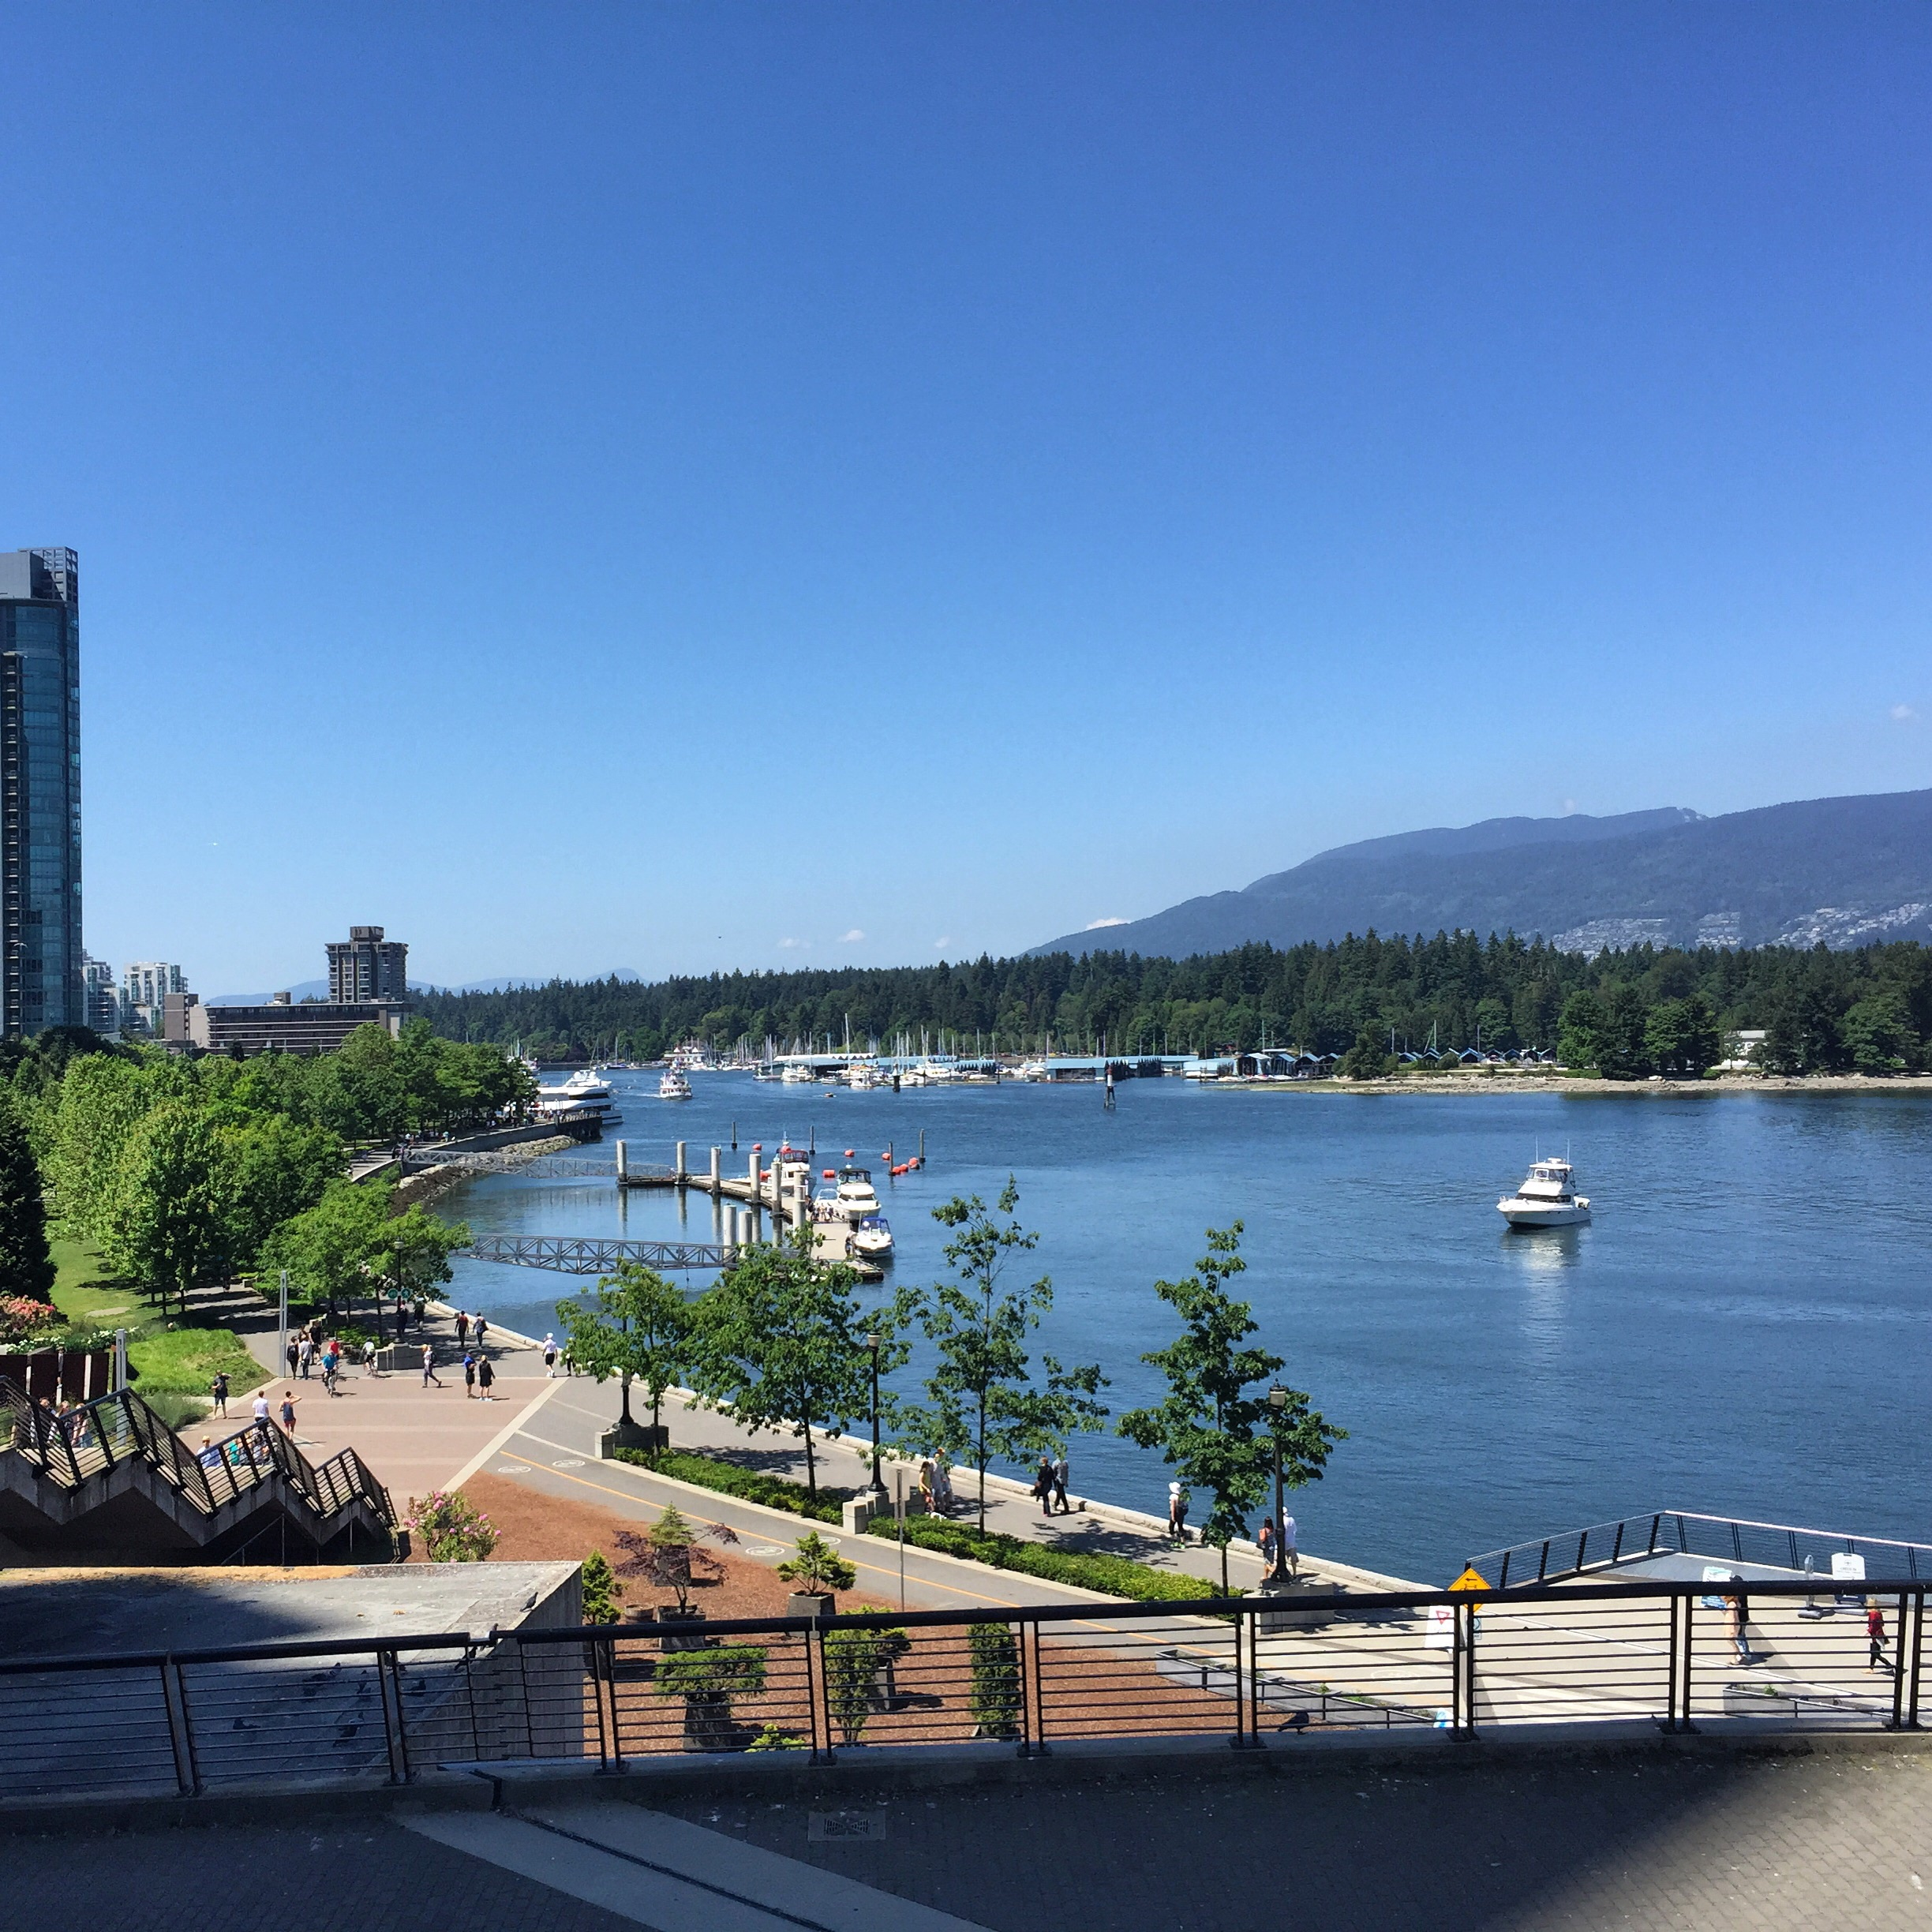 A picture of Stanley Park from my Adventures with Rob yesterday. Perfectly captures the beautiful weather of this weekend.